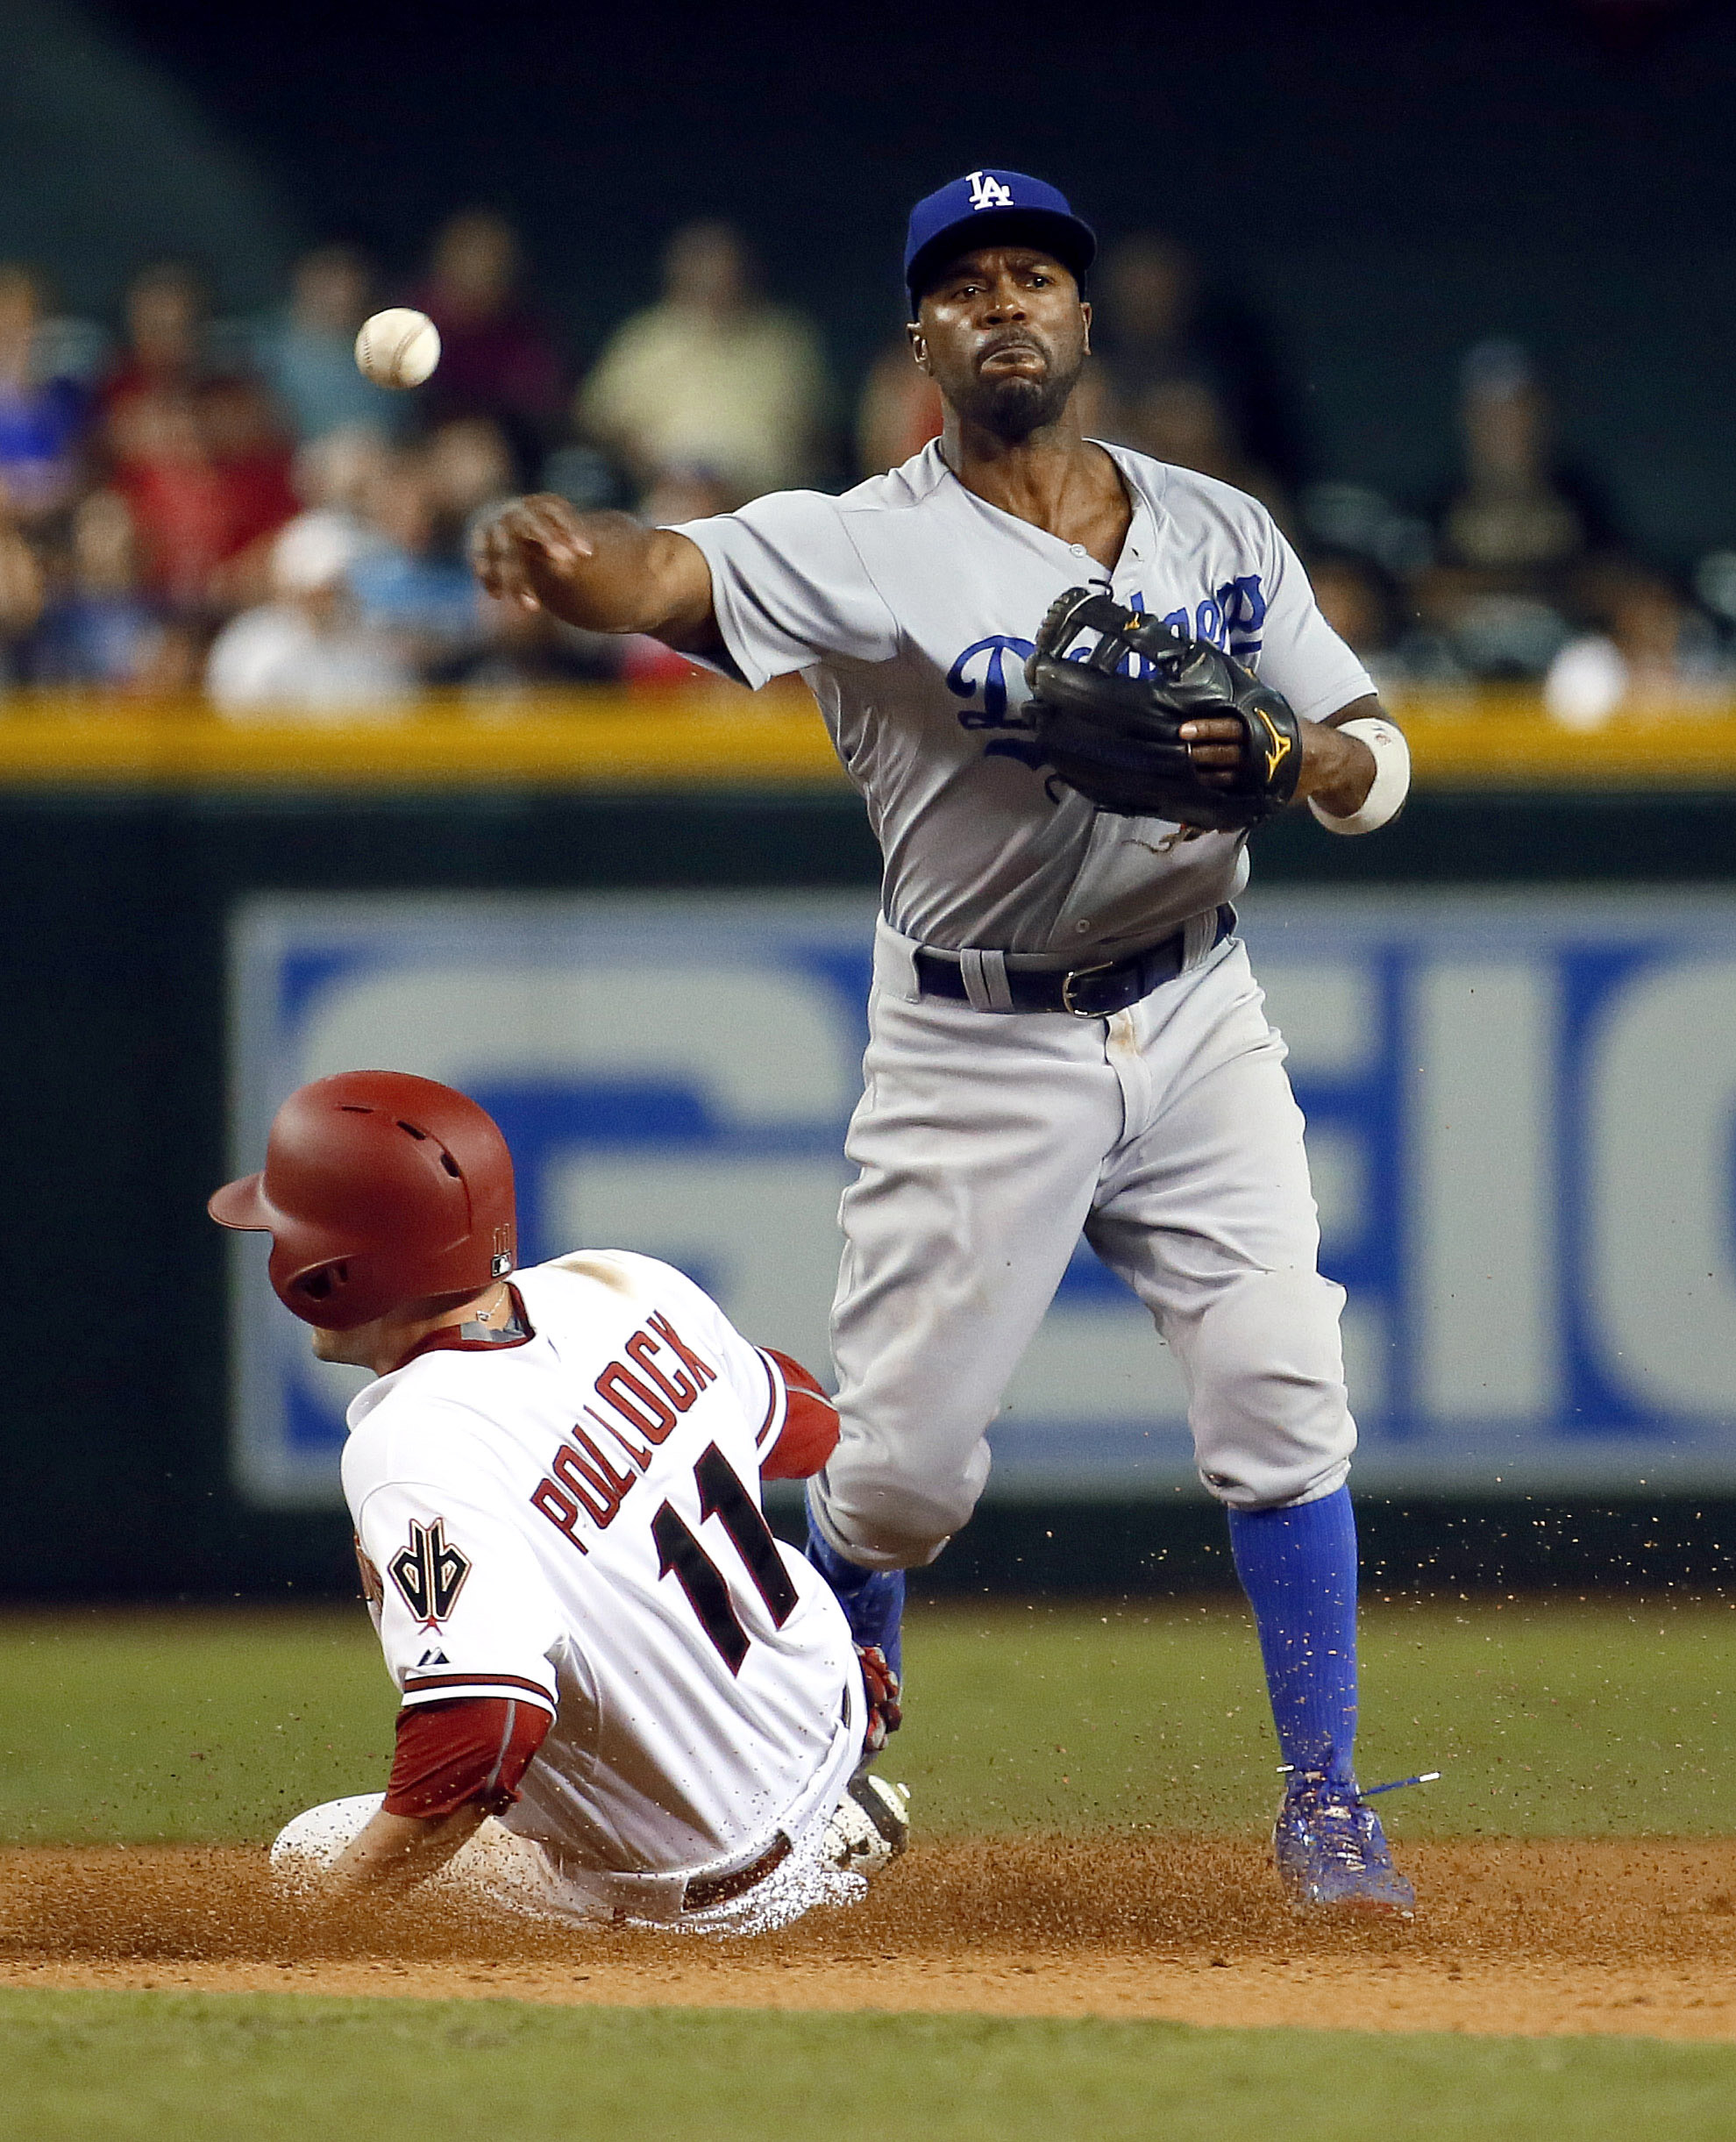 Los Angeles Dodgers shortstop Jimmy Rollins forces out Arizona Diamondbacks' A.J. Pollock while turning a double play on Diamondbacks' David Peralta during the seventh inning of a baseball game, Tuesday, June 30, 2015, in Phoenix. (AP Photo/Matt York)